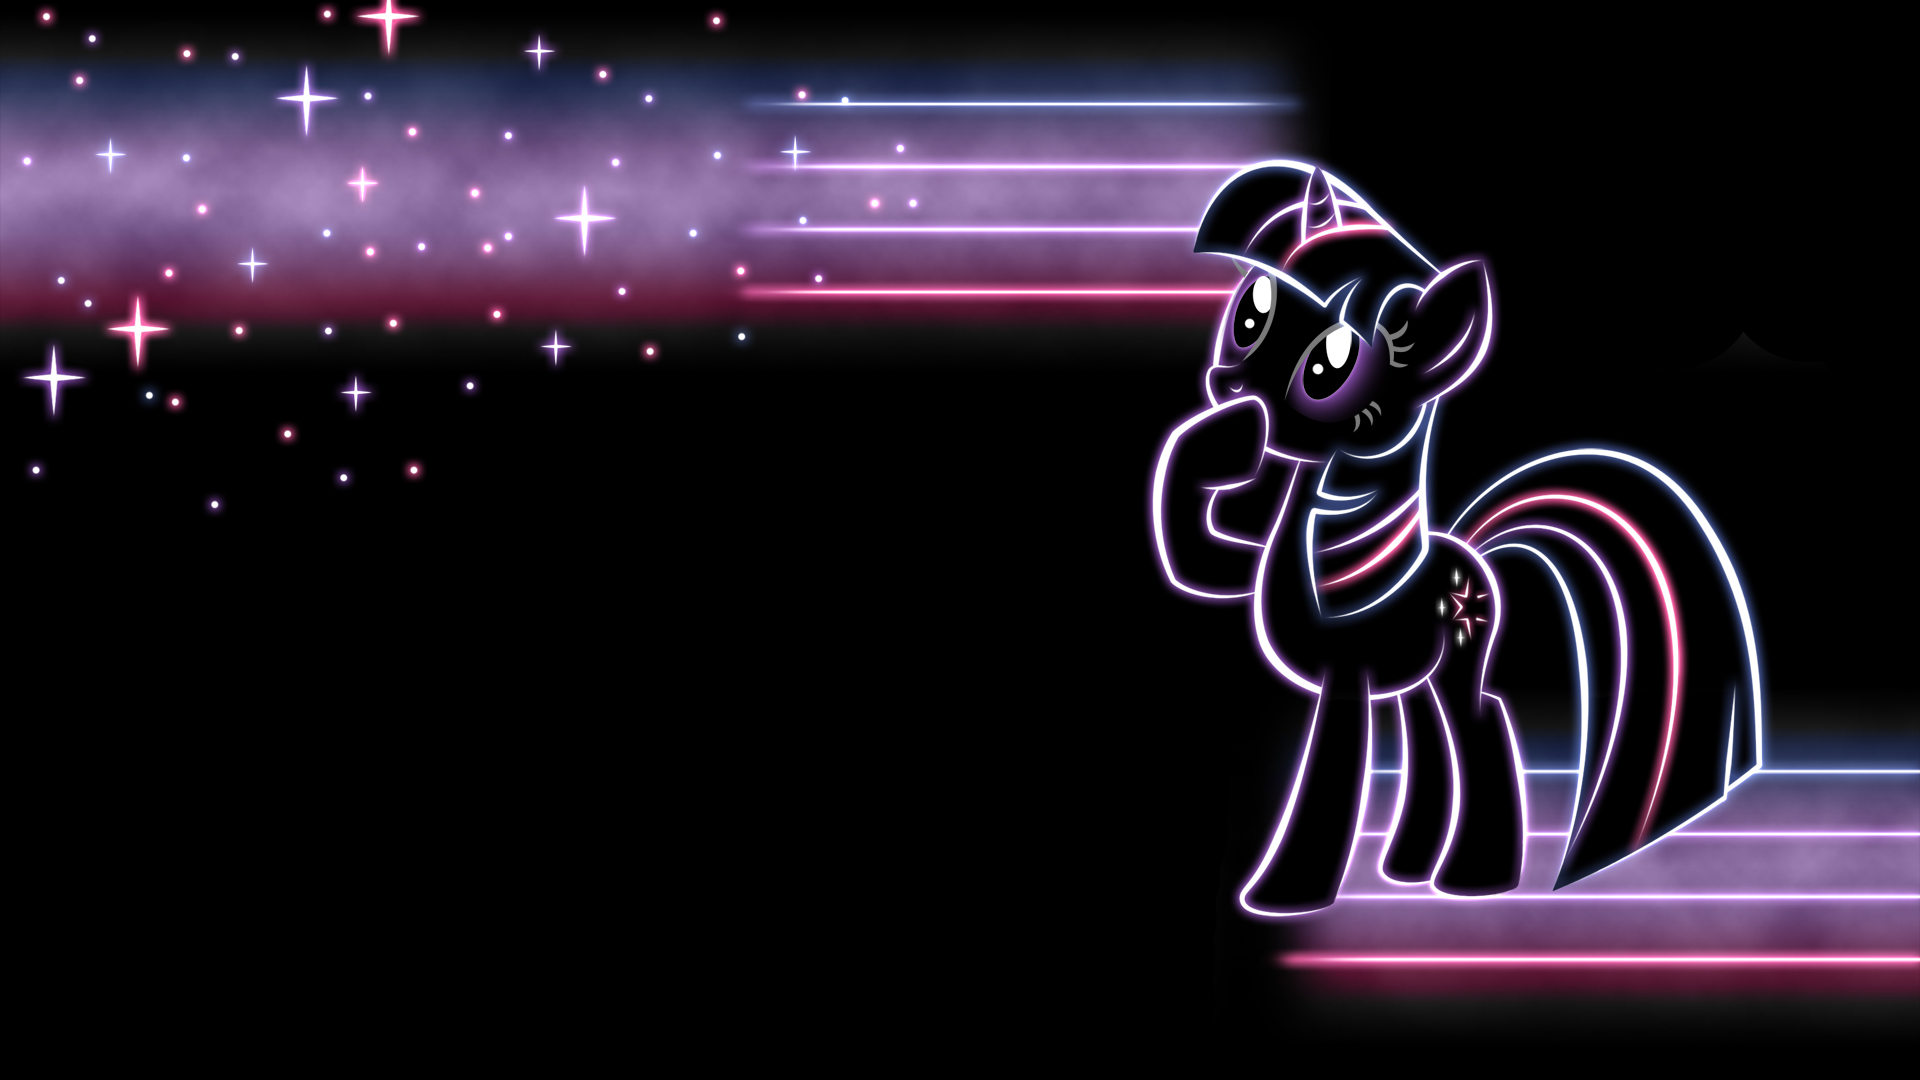 Mlp Glow Wallpapers My Little Pony Friendship Is Magic Wallpaper